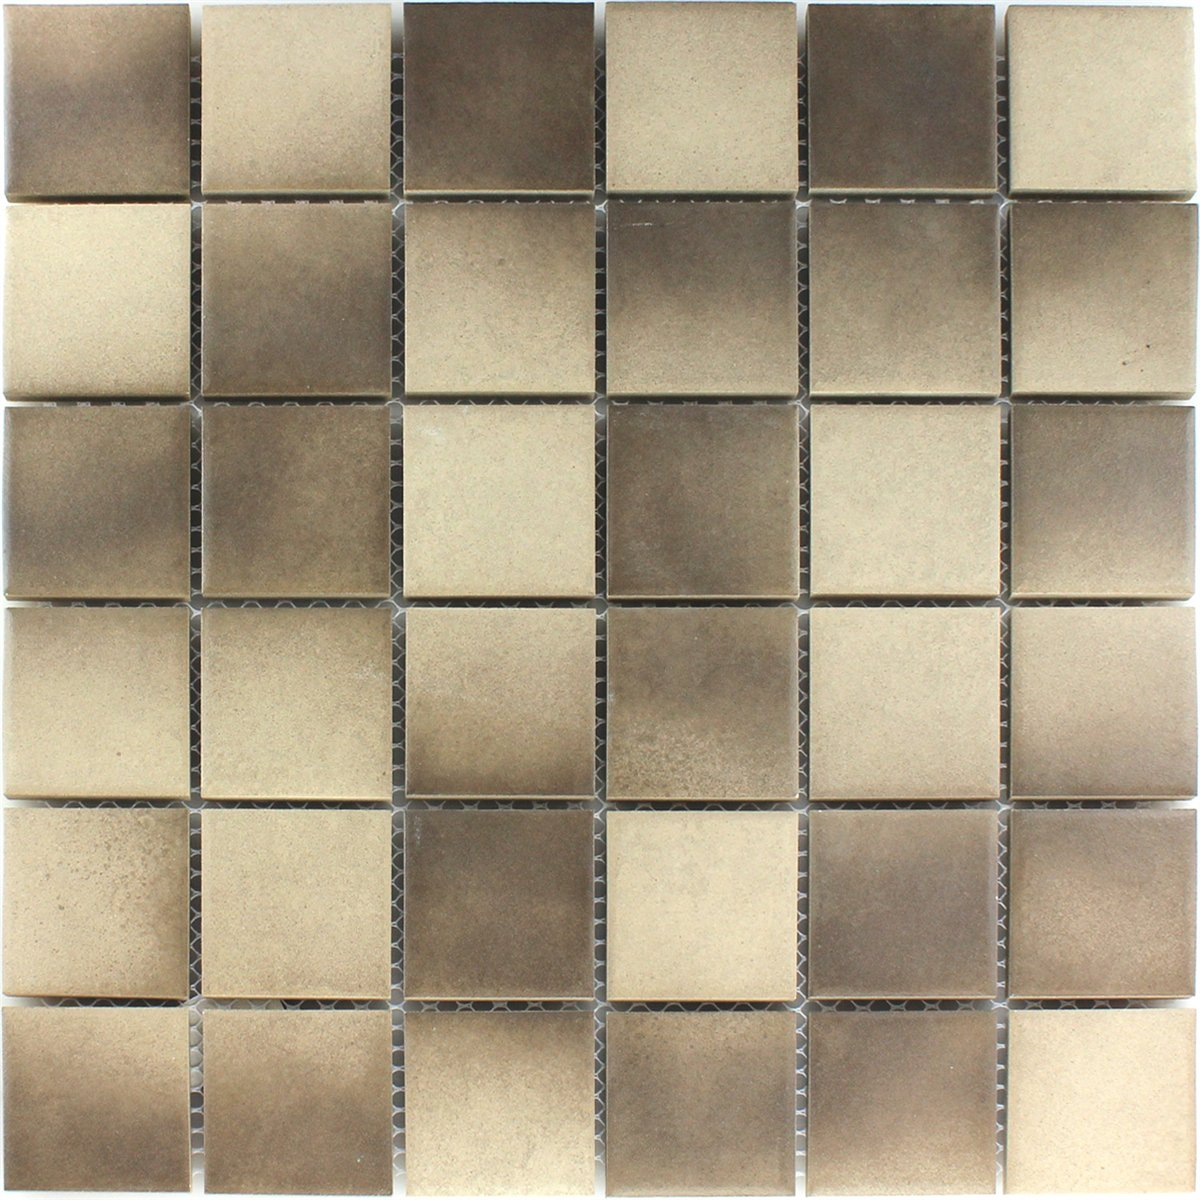 Ceramic mosaic tiles non slip beige brown mosafil mosaic tiles ceramic non slip beige brown dailygadgetfo Image collections